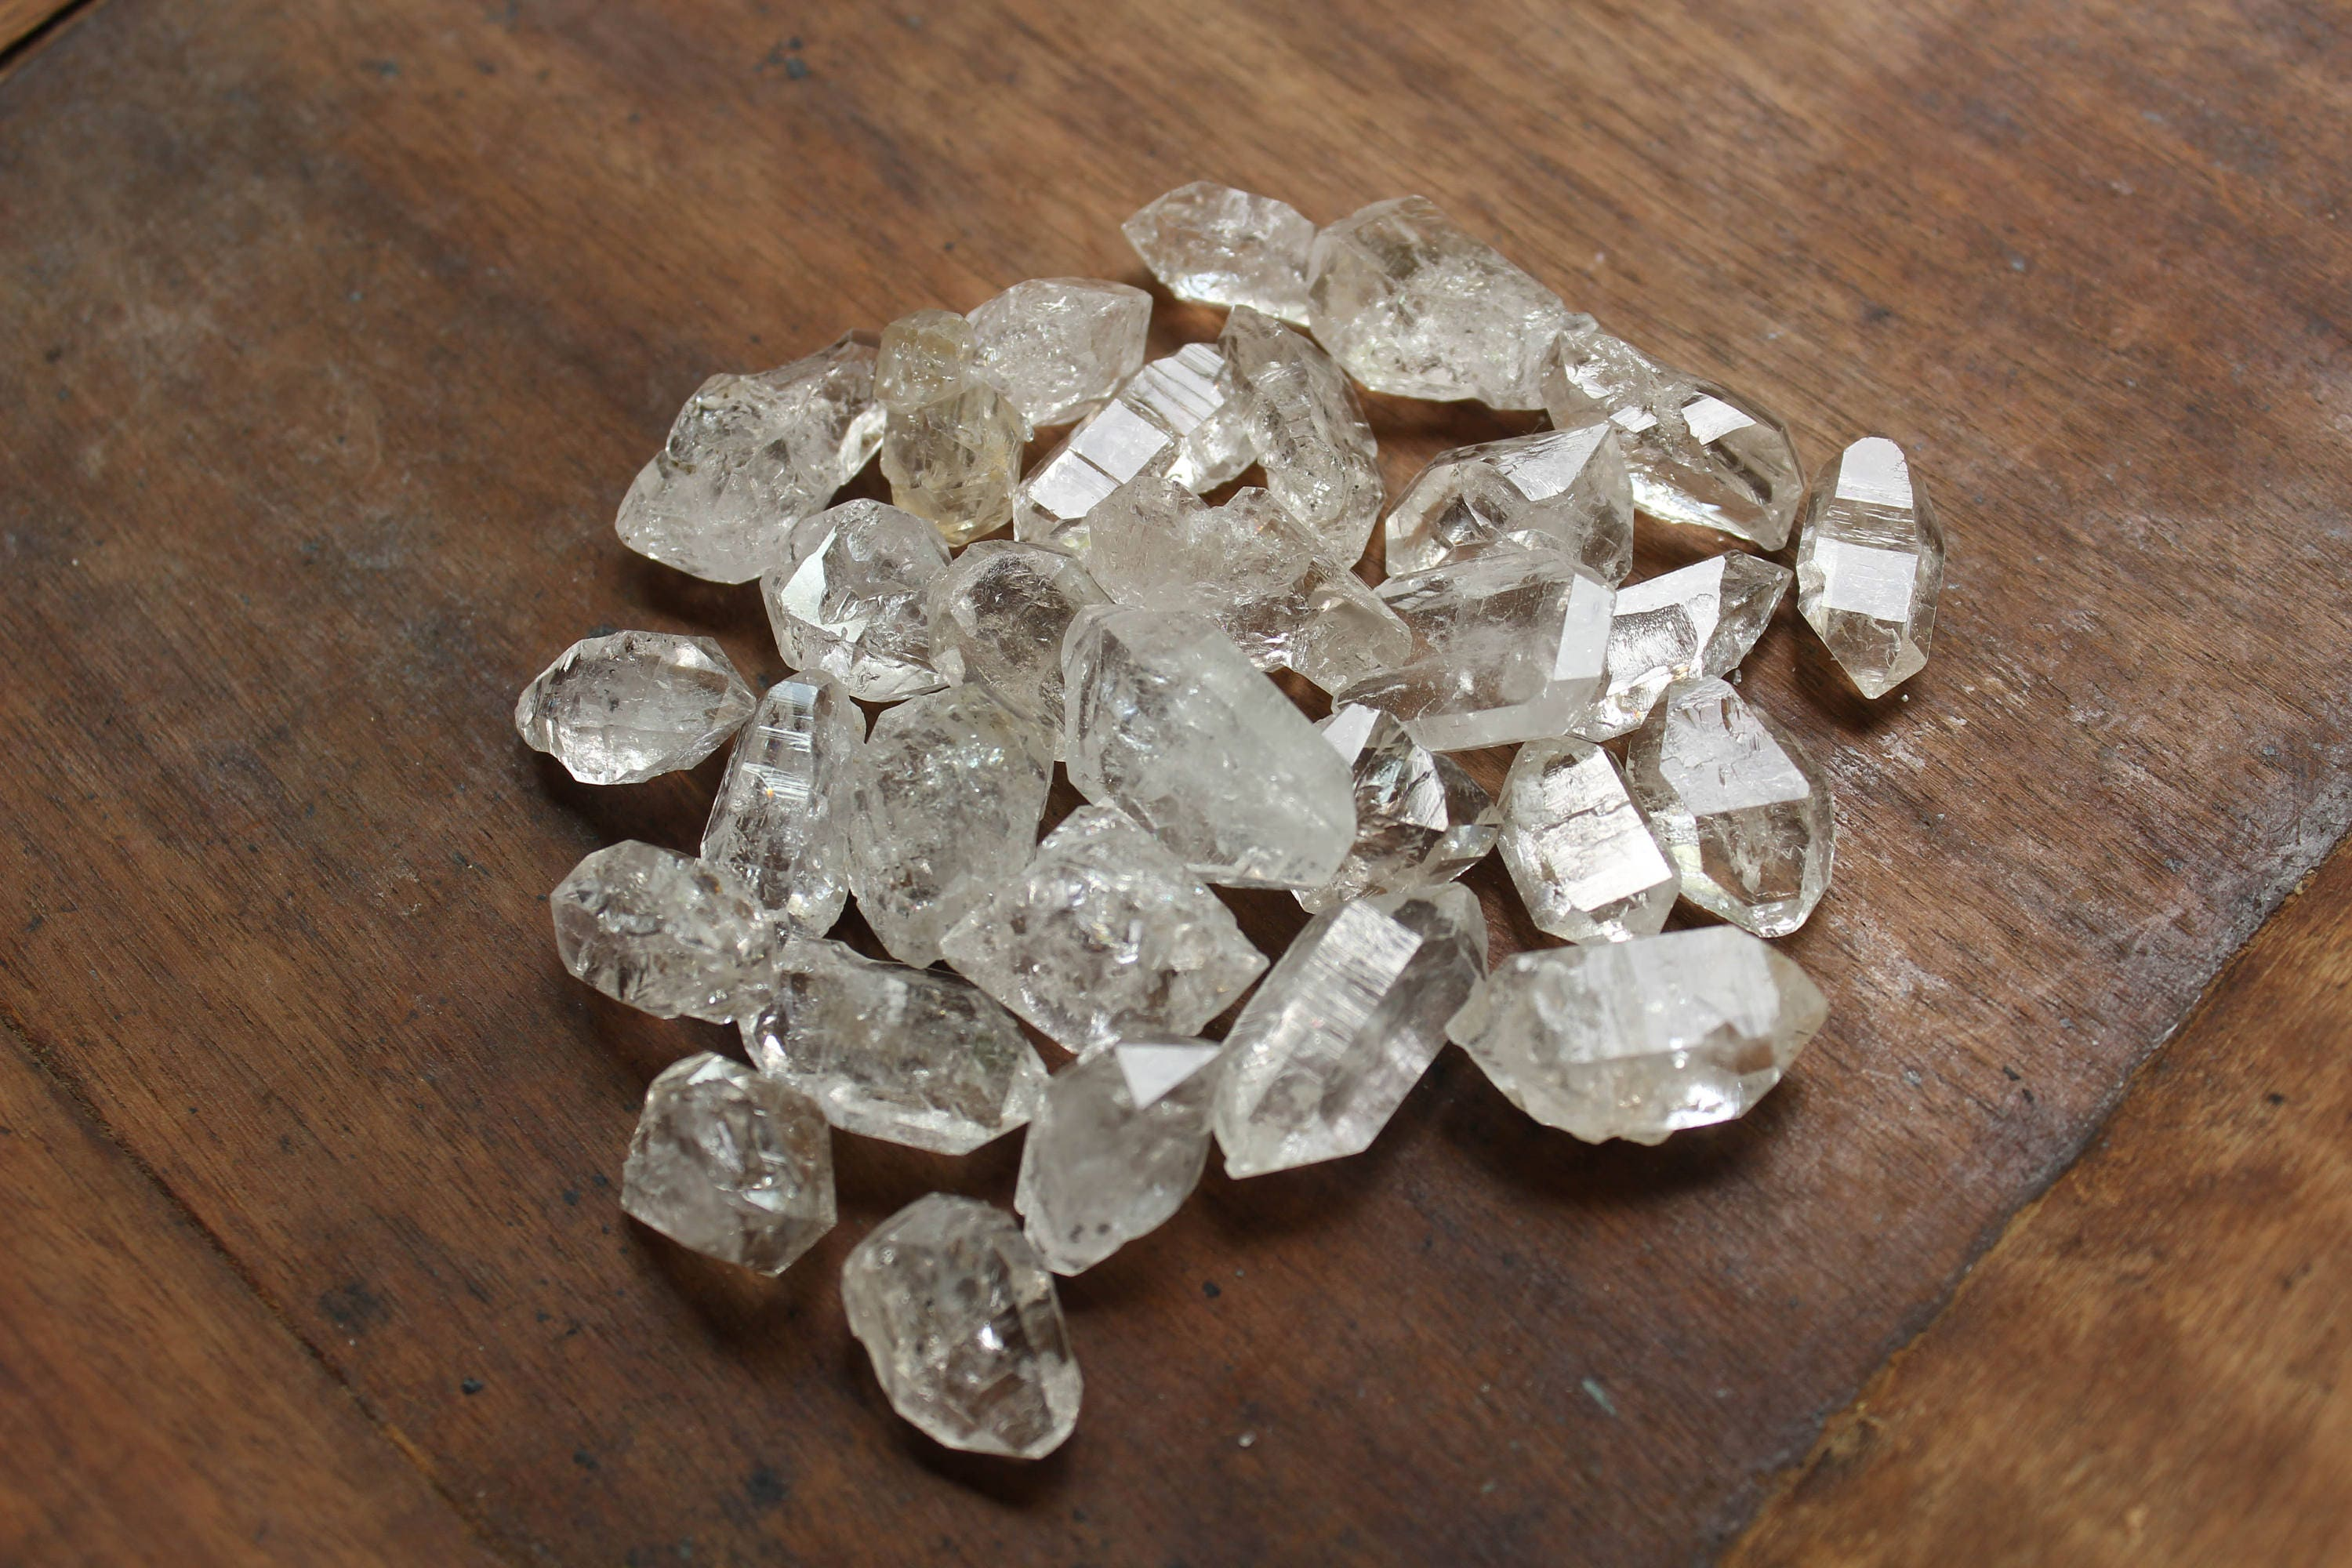 def alibaba vvs diamond carat bulk and showroom simulate manufacturers com suppliers moissanite at diamonds